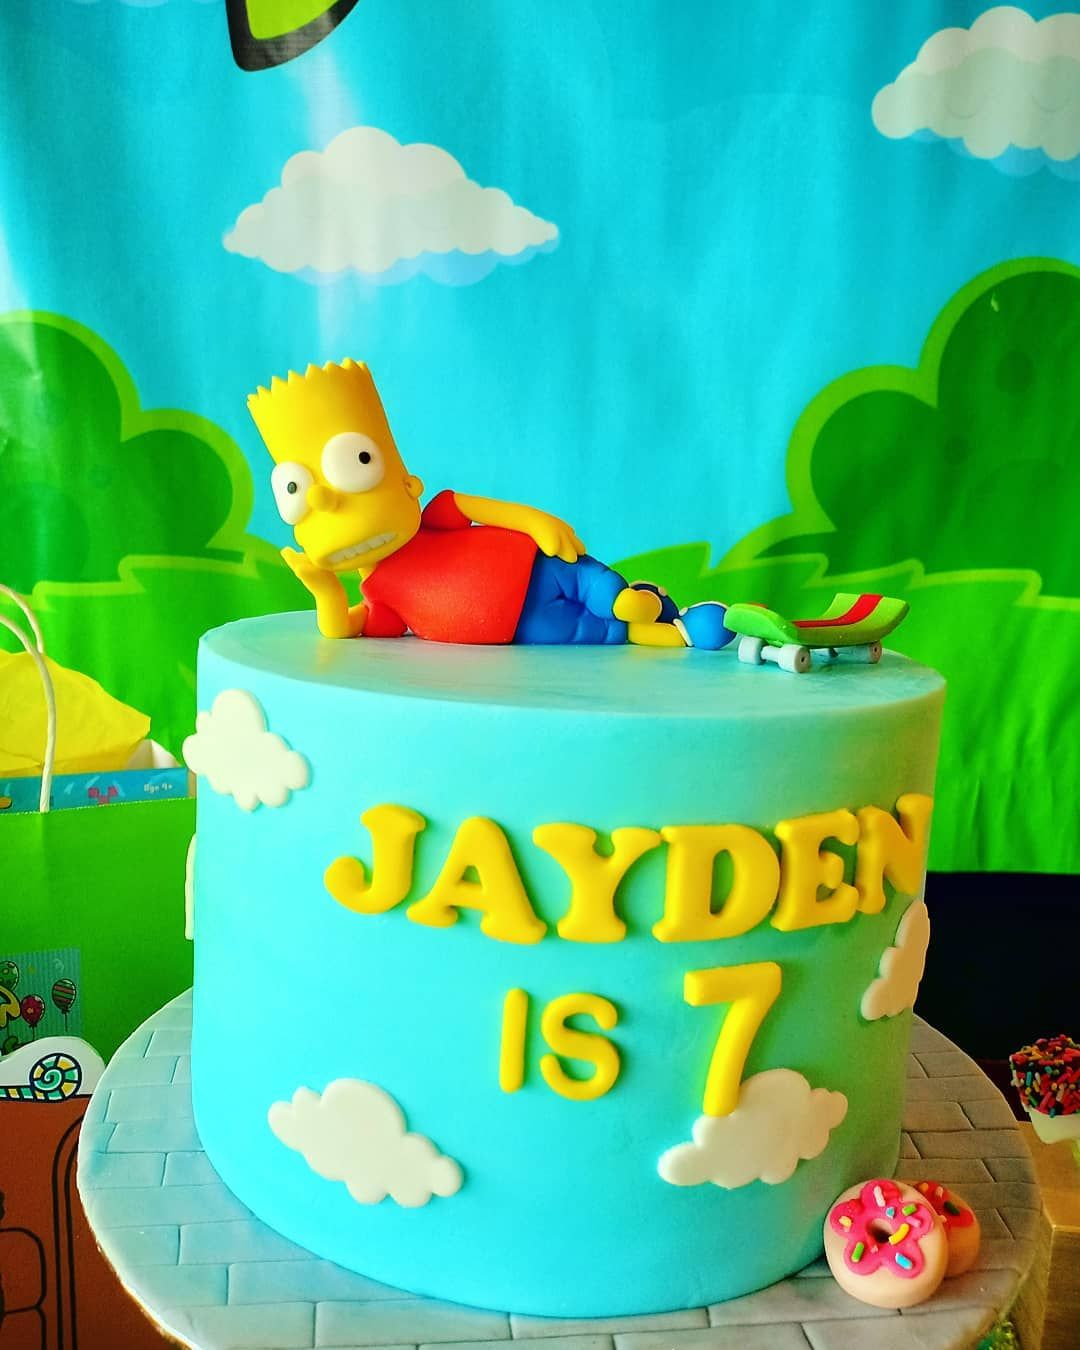 Make A Wish Creations On Instagram Makeawish Creations Themedparty Simpsons Cake Simpsons Cake Cake Simpsons Party